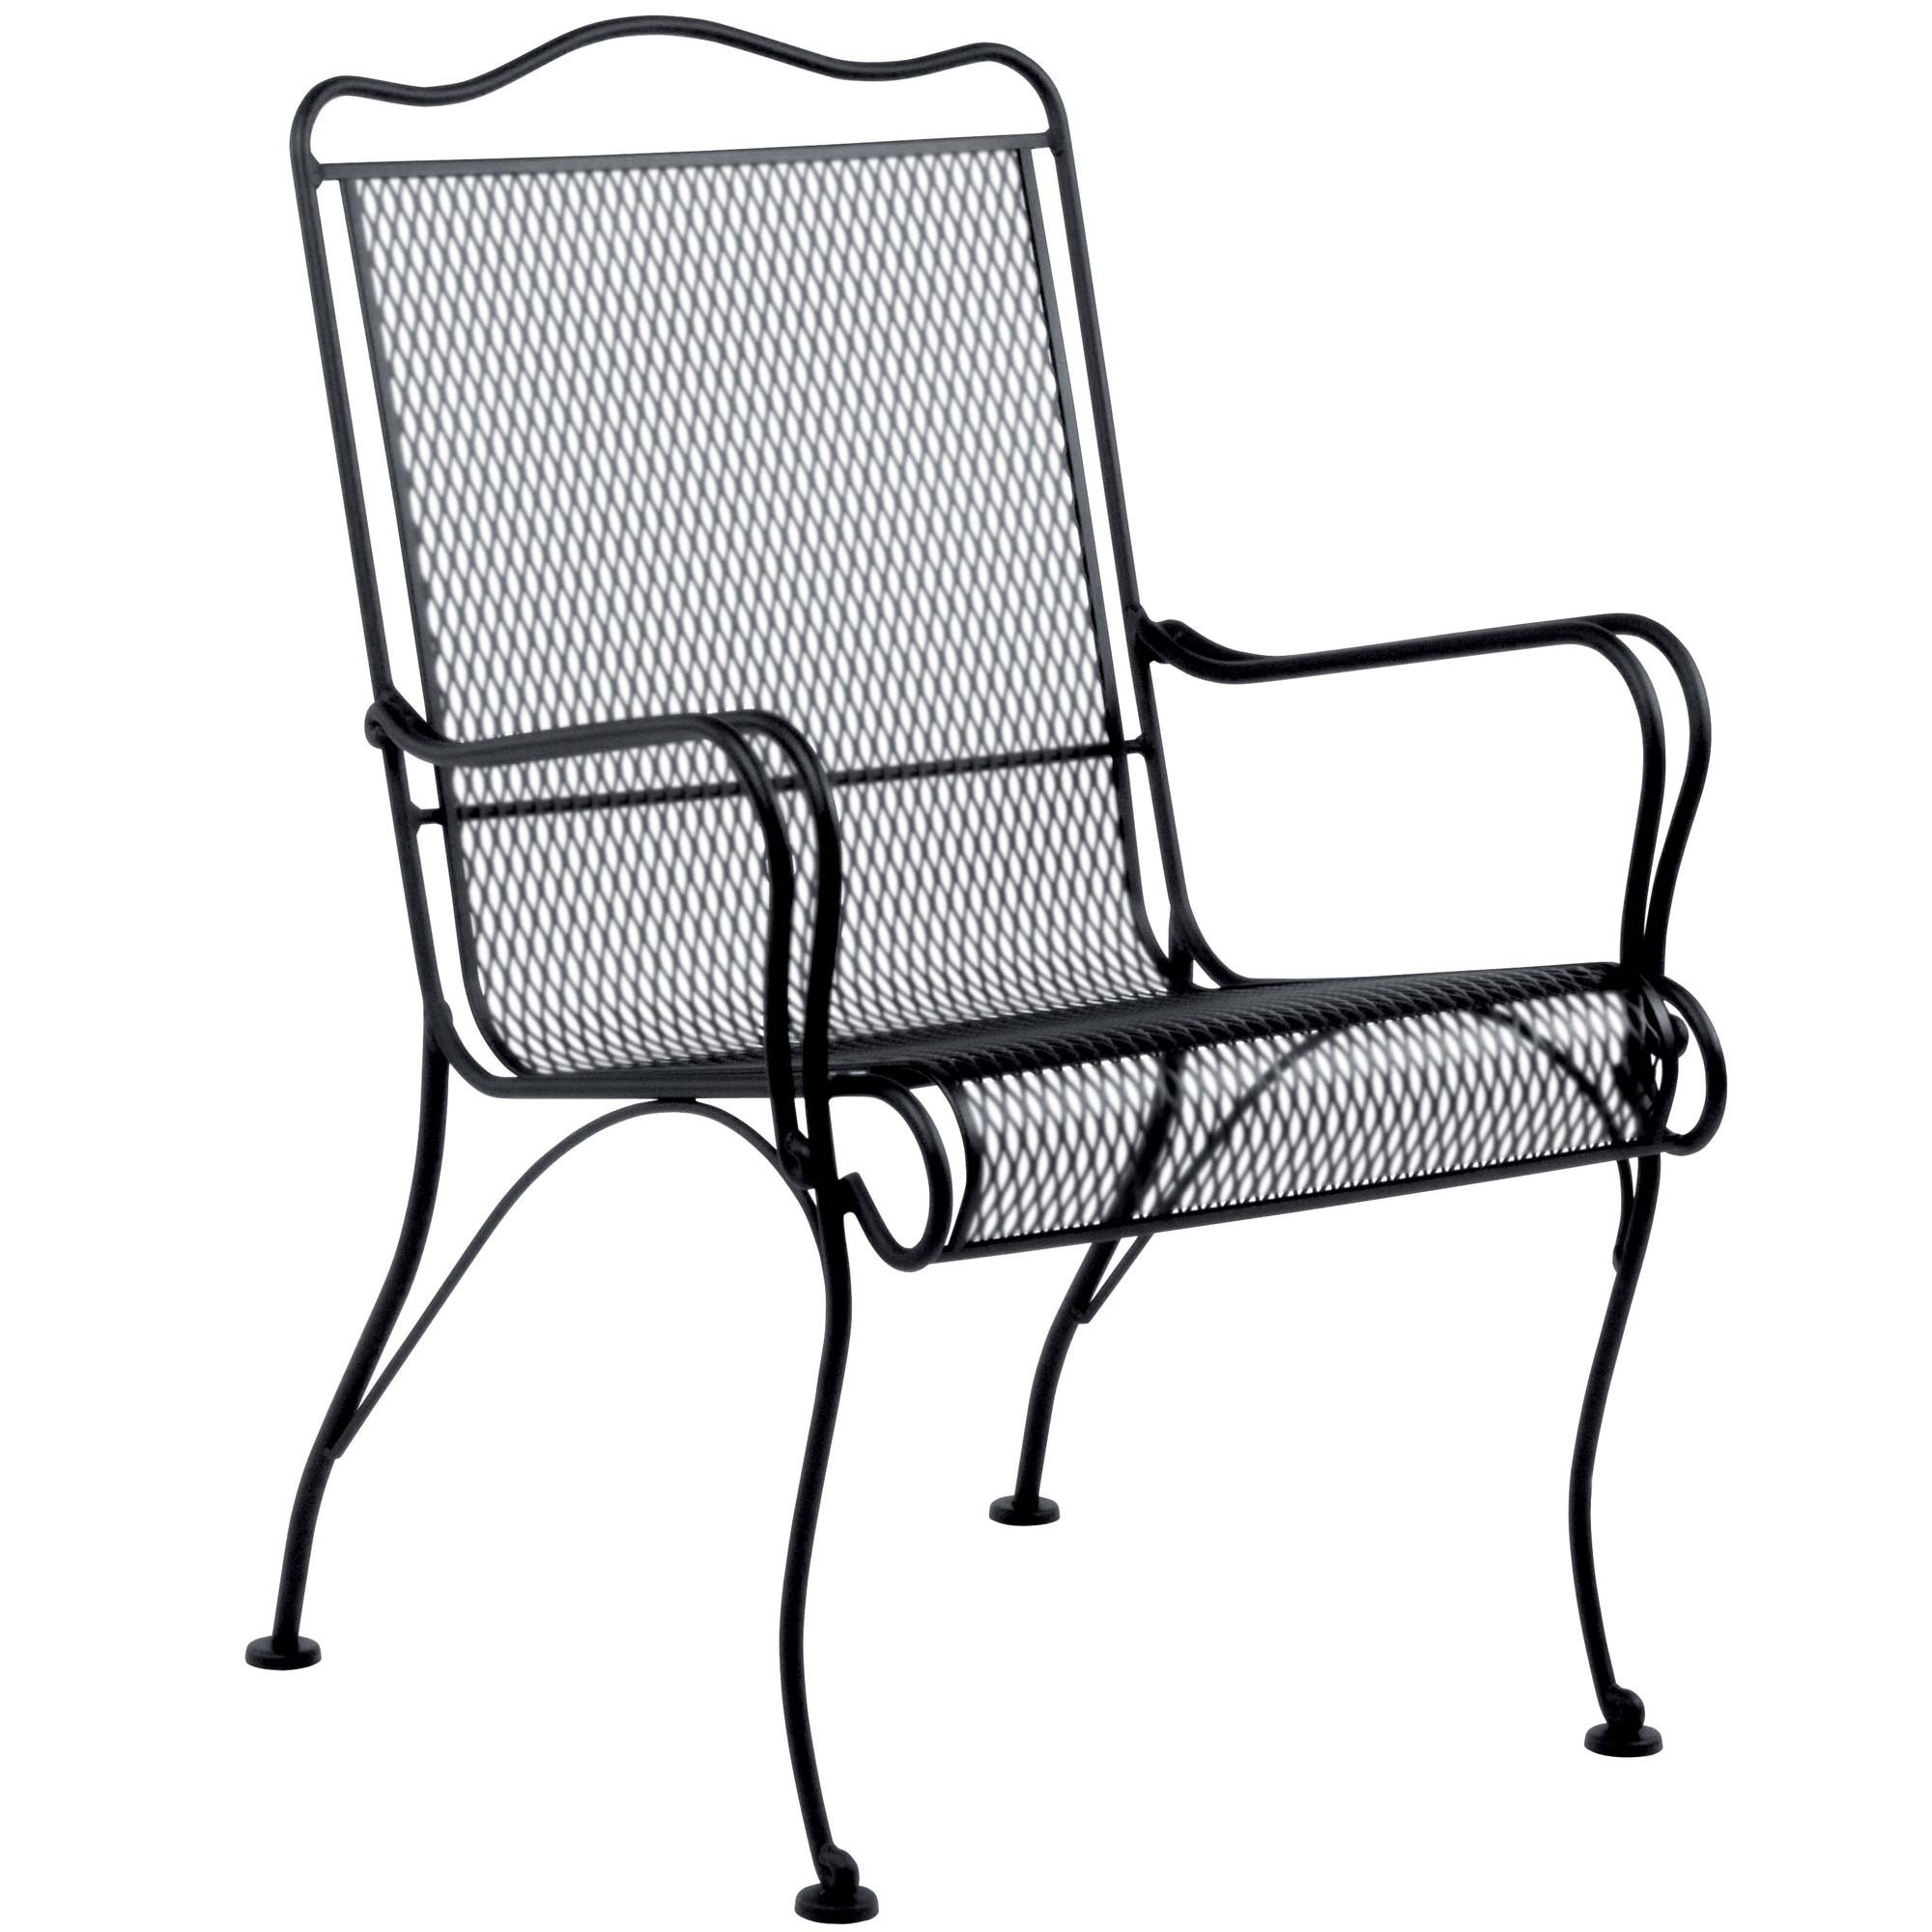 Pictured is the Tucson High Back Lounge Chair from Woodard